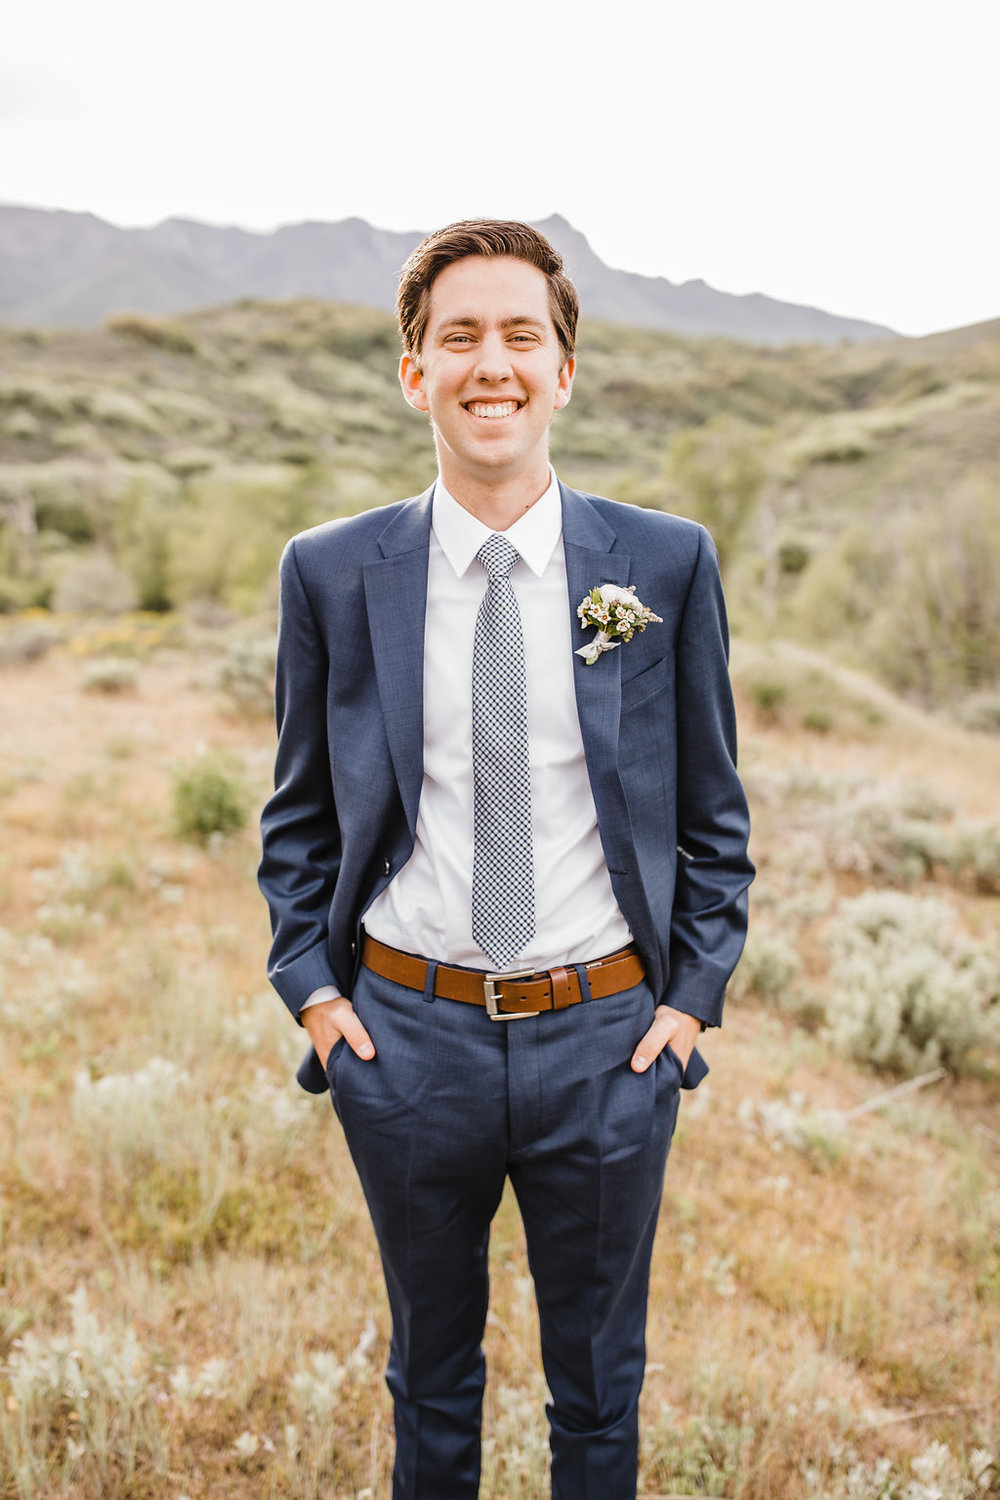 formal wedding photography groom suit formals in a mountain professional photographer logan utah calli richards